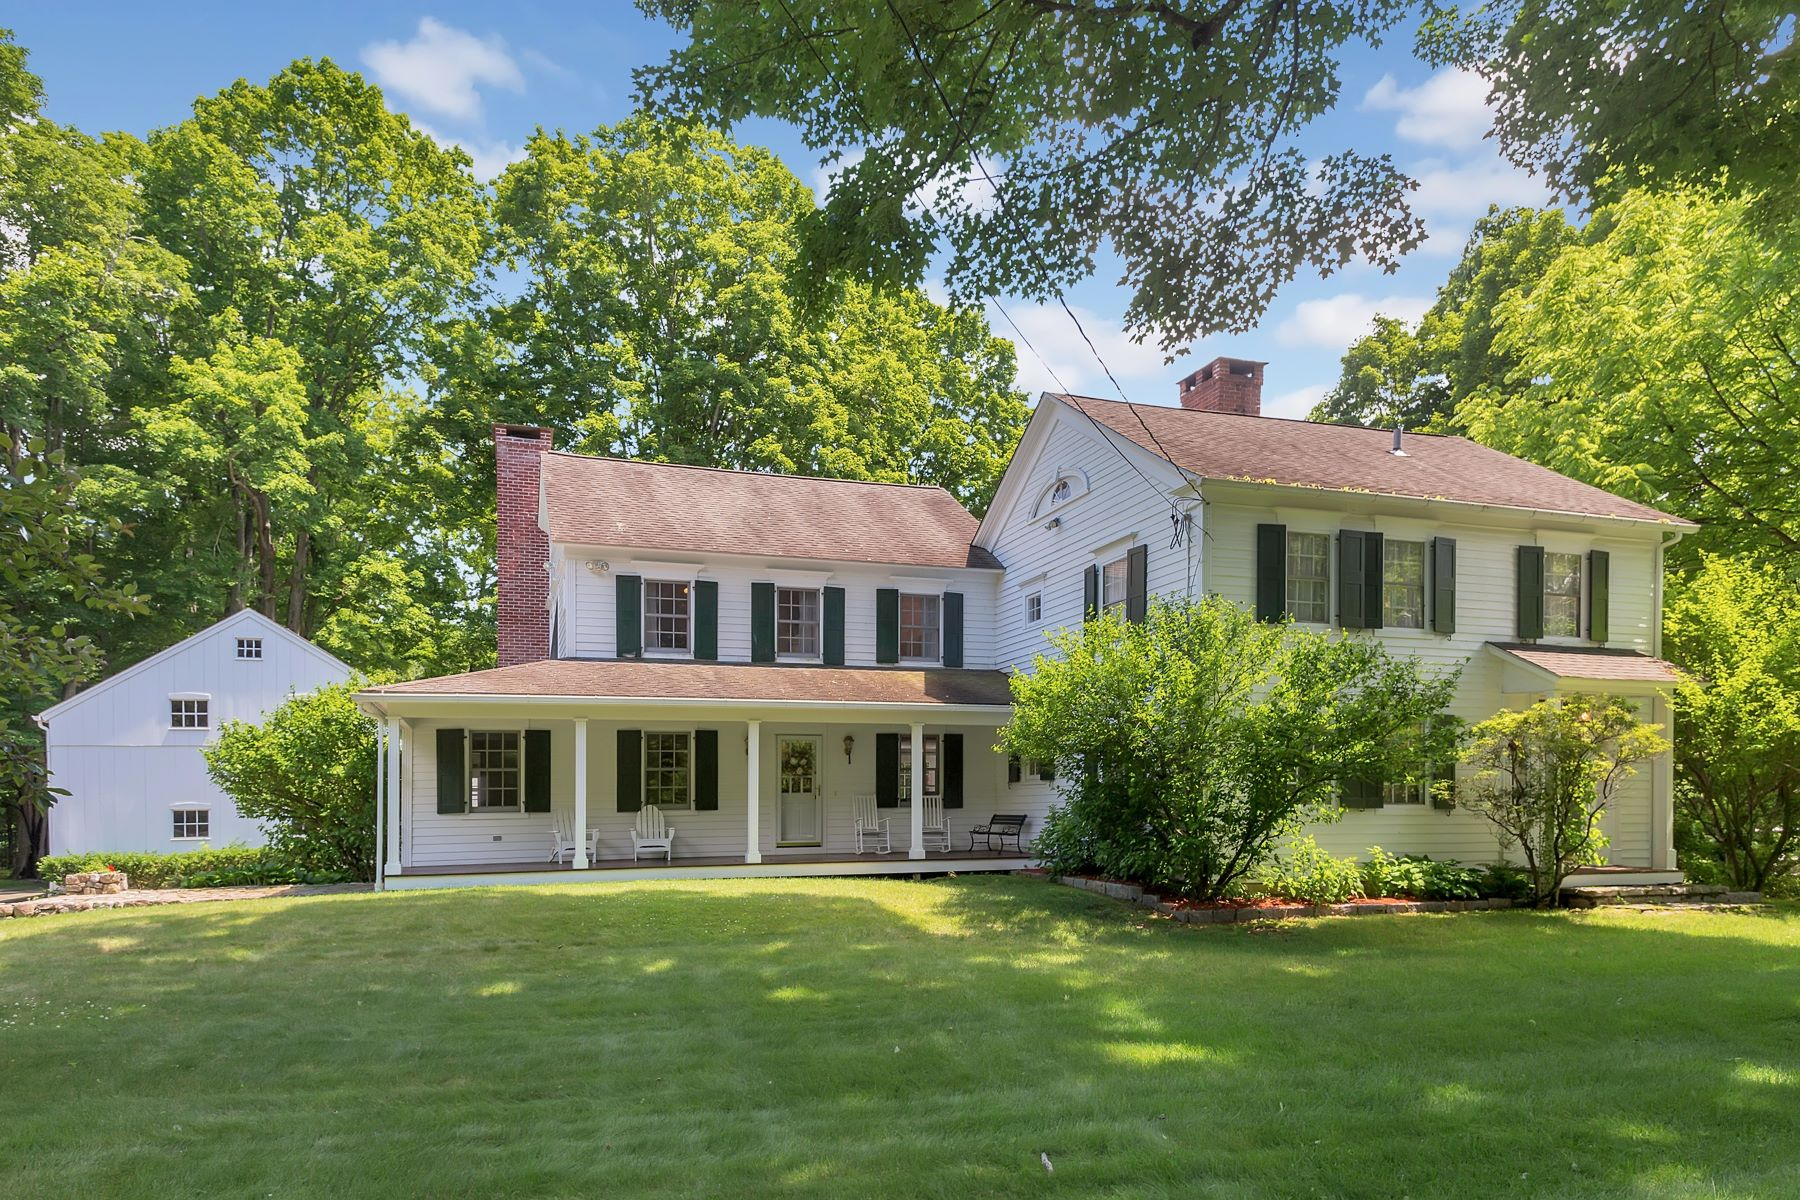 Single Family Home for Sale at Harmonious Blend of Old and New 87 Partrick Road, Westport, Connecticut, 06880 United States